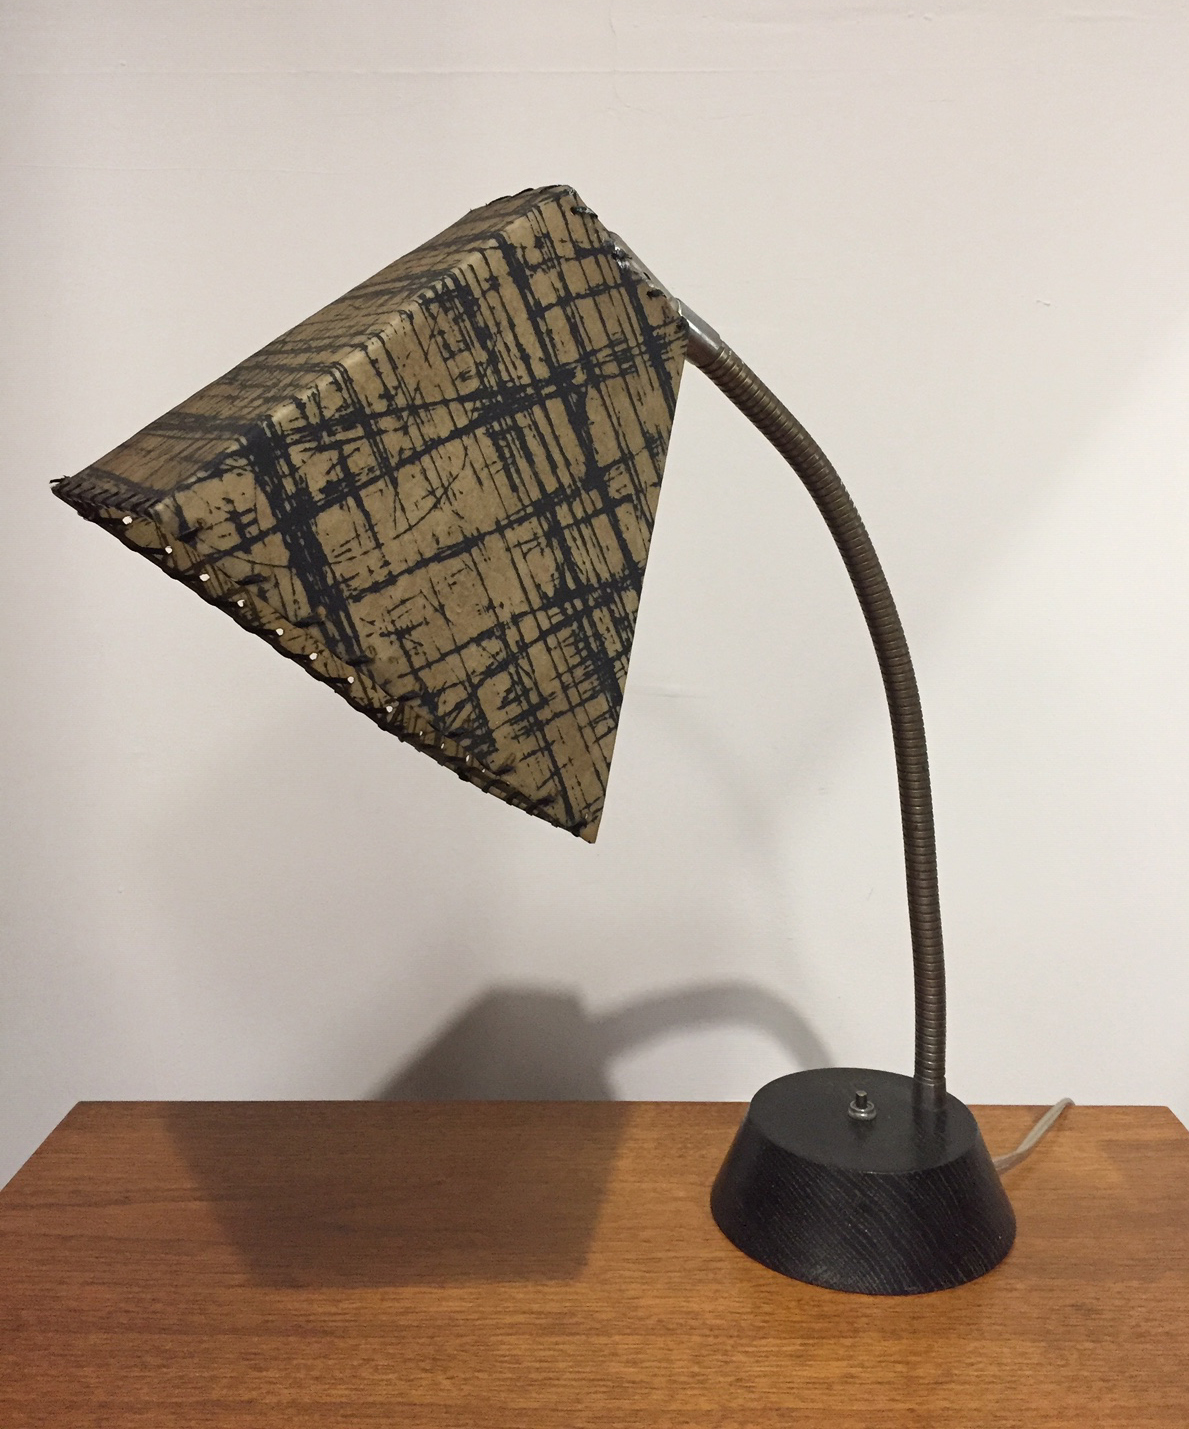 MID CENTURY ATOMIC DESK LAMP WITH FIBERGLASS SHADE